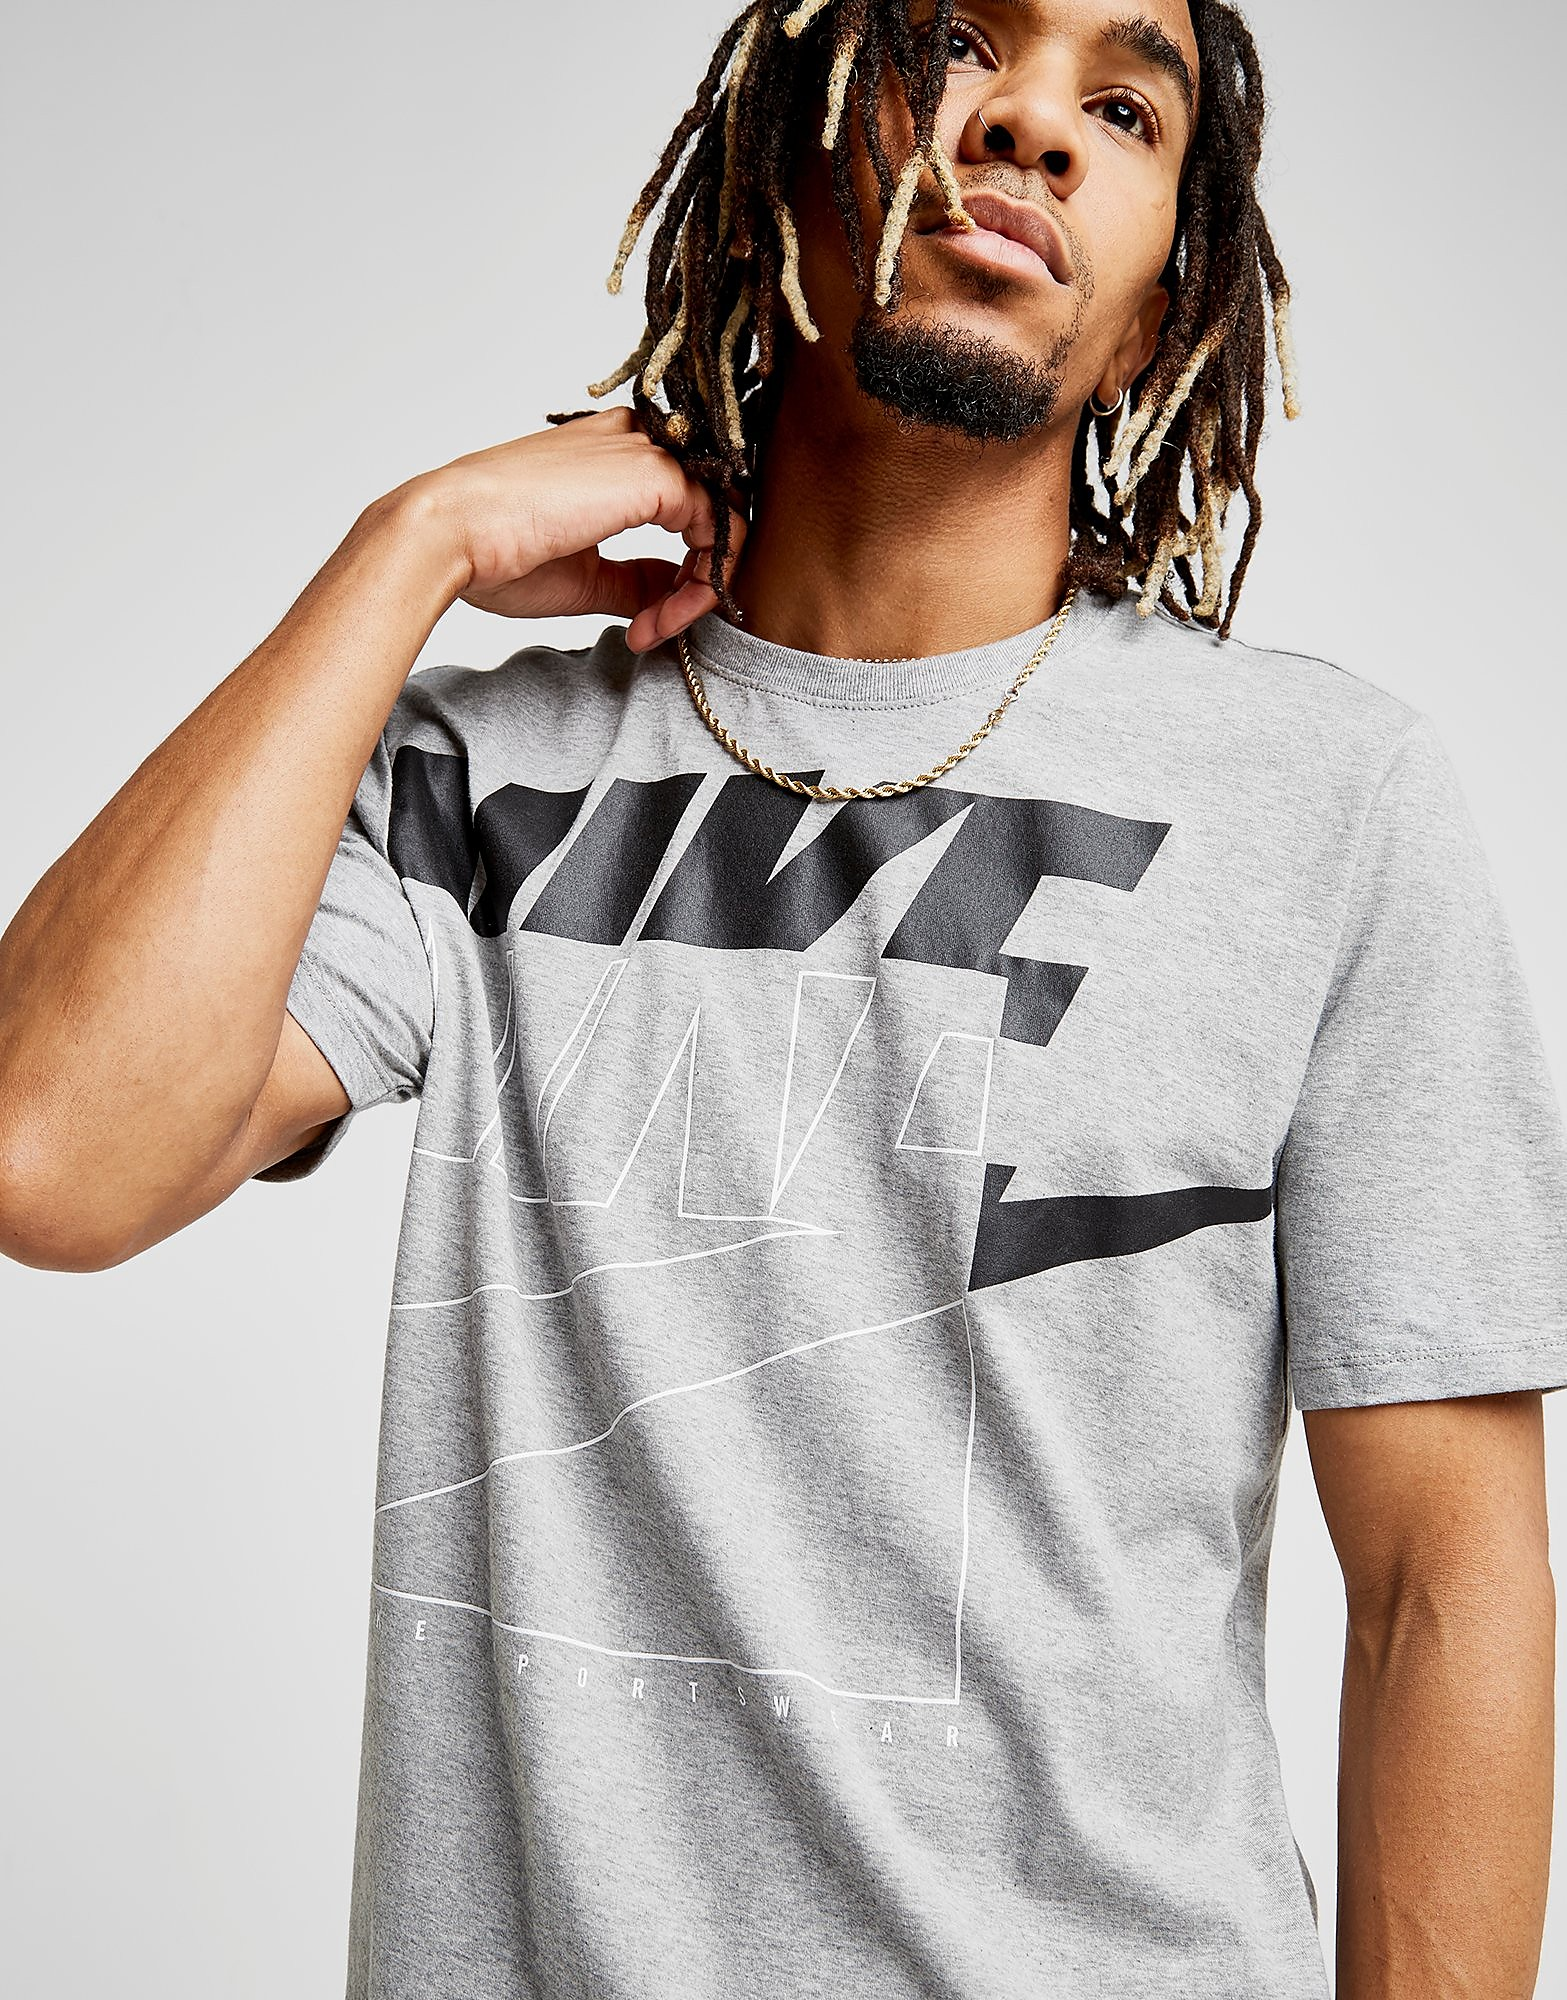 Nike Futura Outline T-Shirt